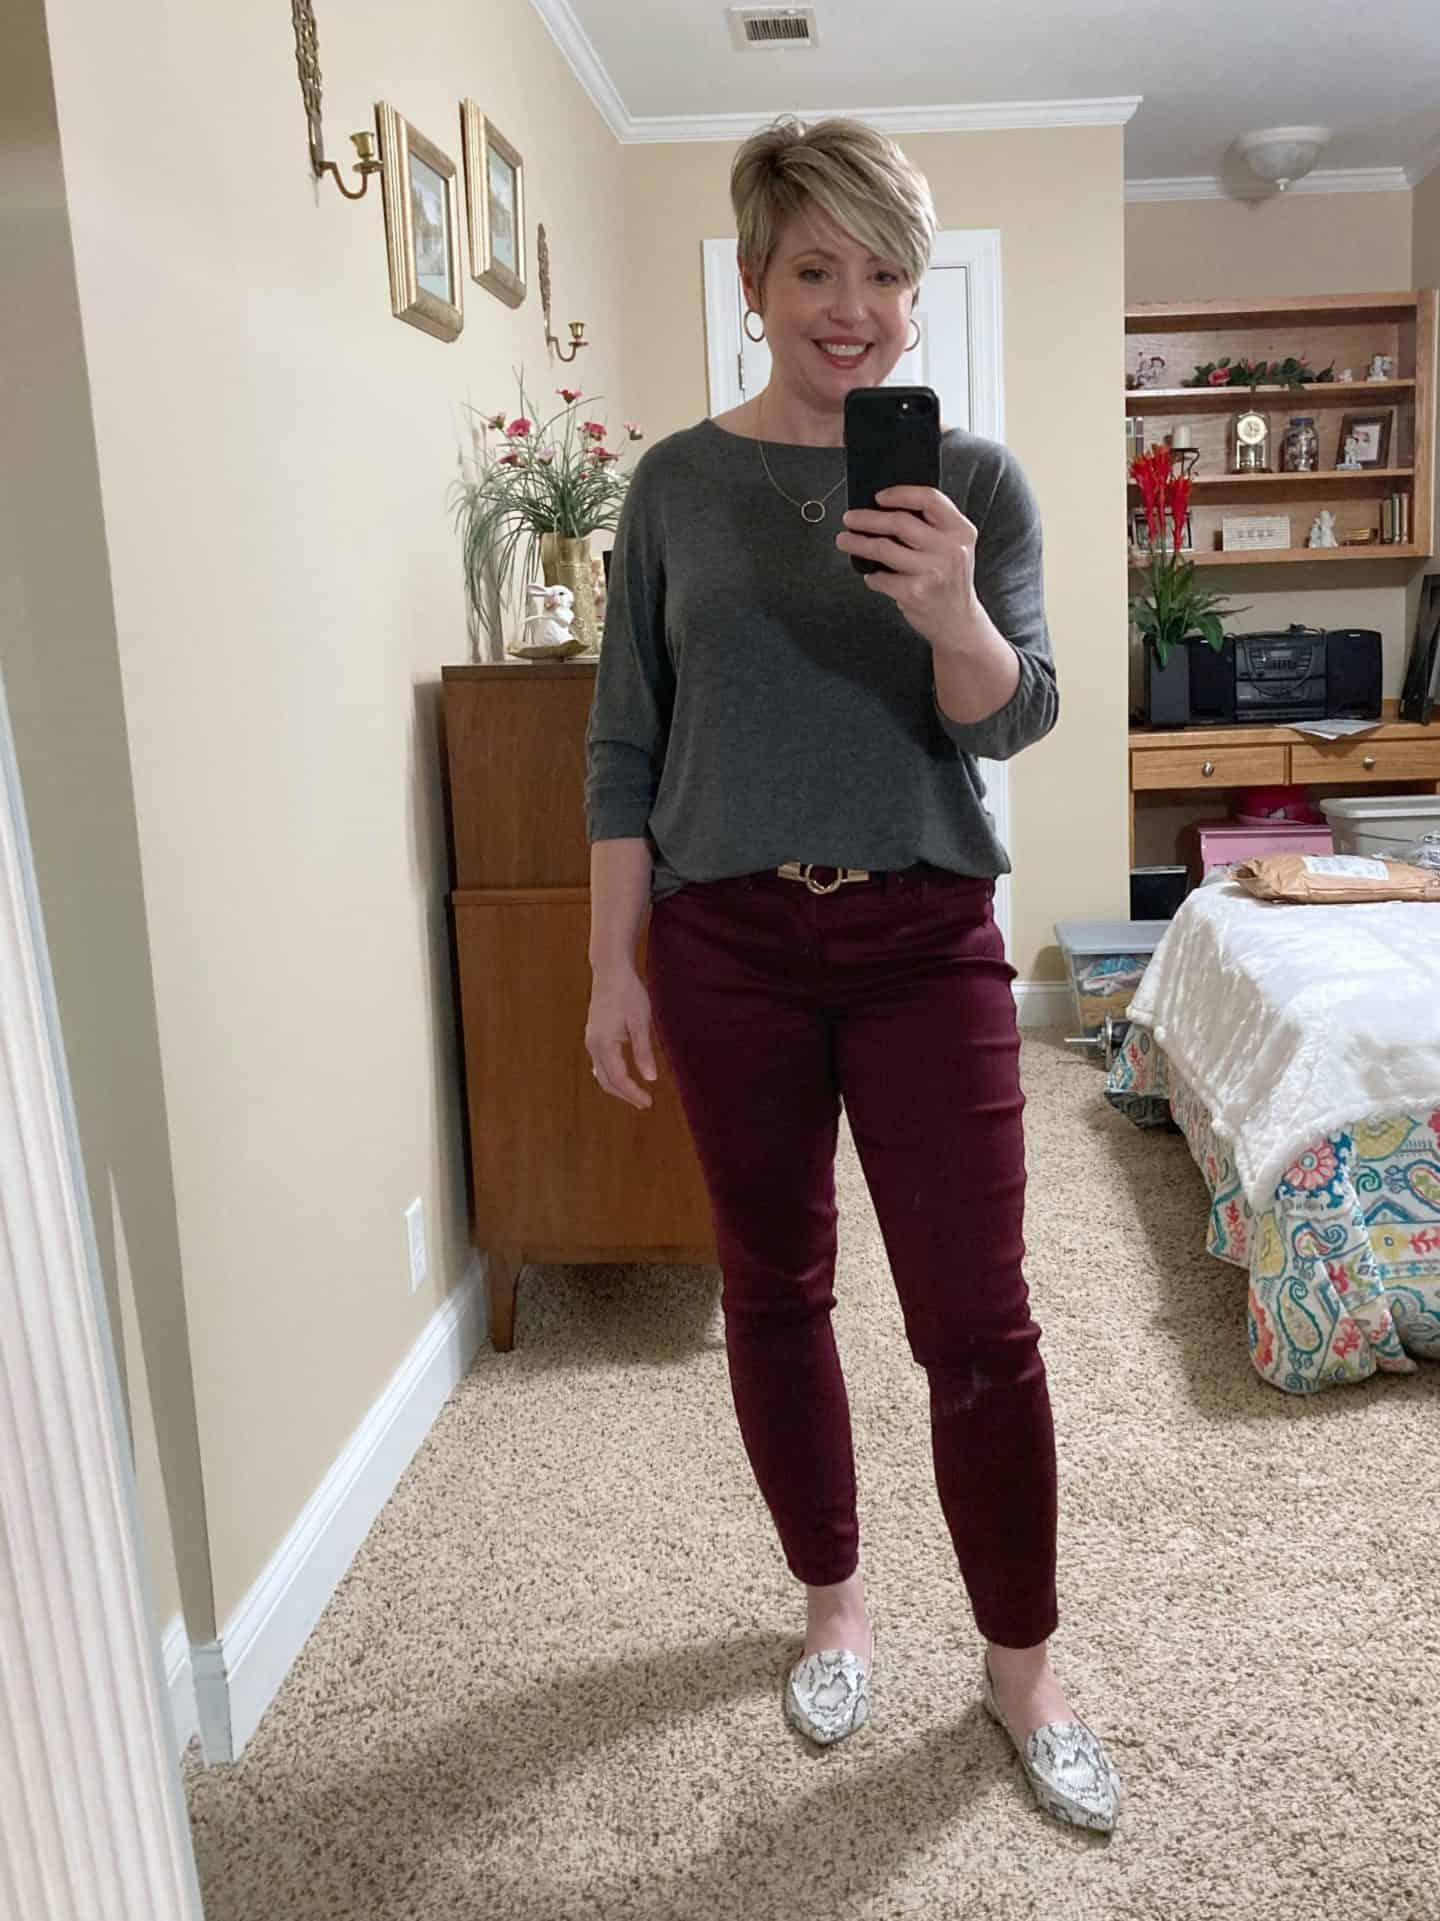 fall outfit for women over 40, burgundy jeans and snakeksin flats, outfits for errands and casual outings